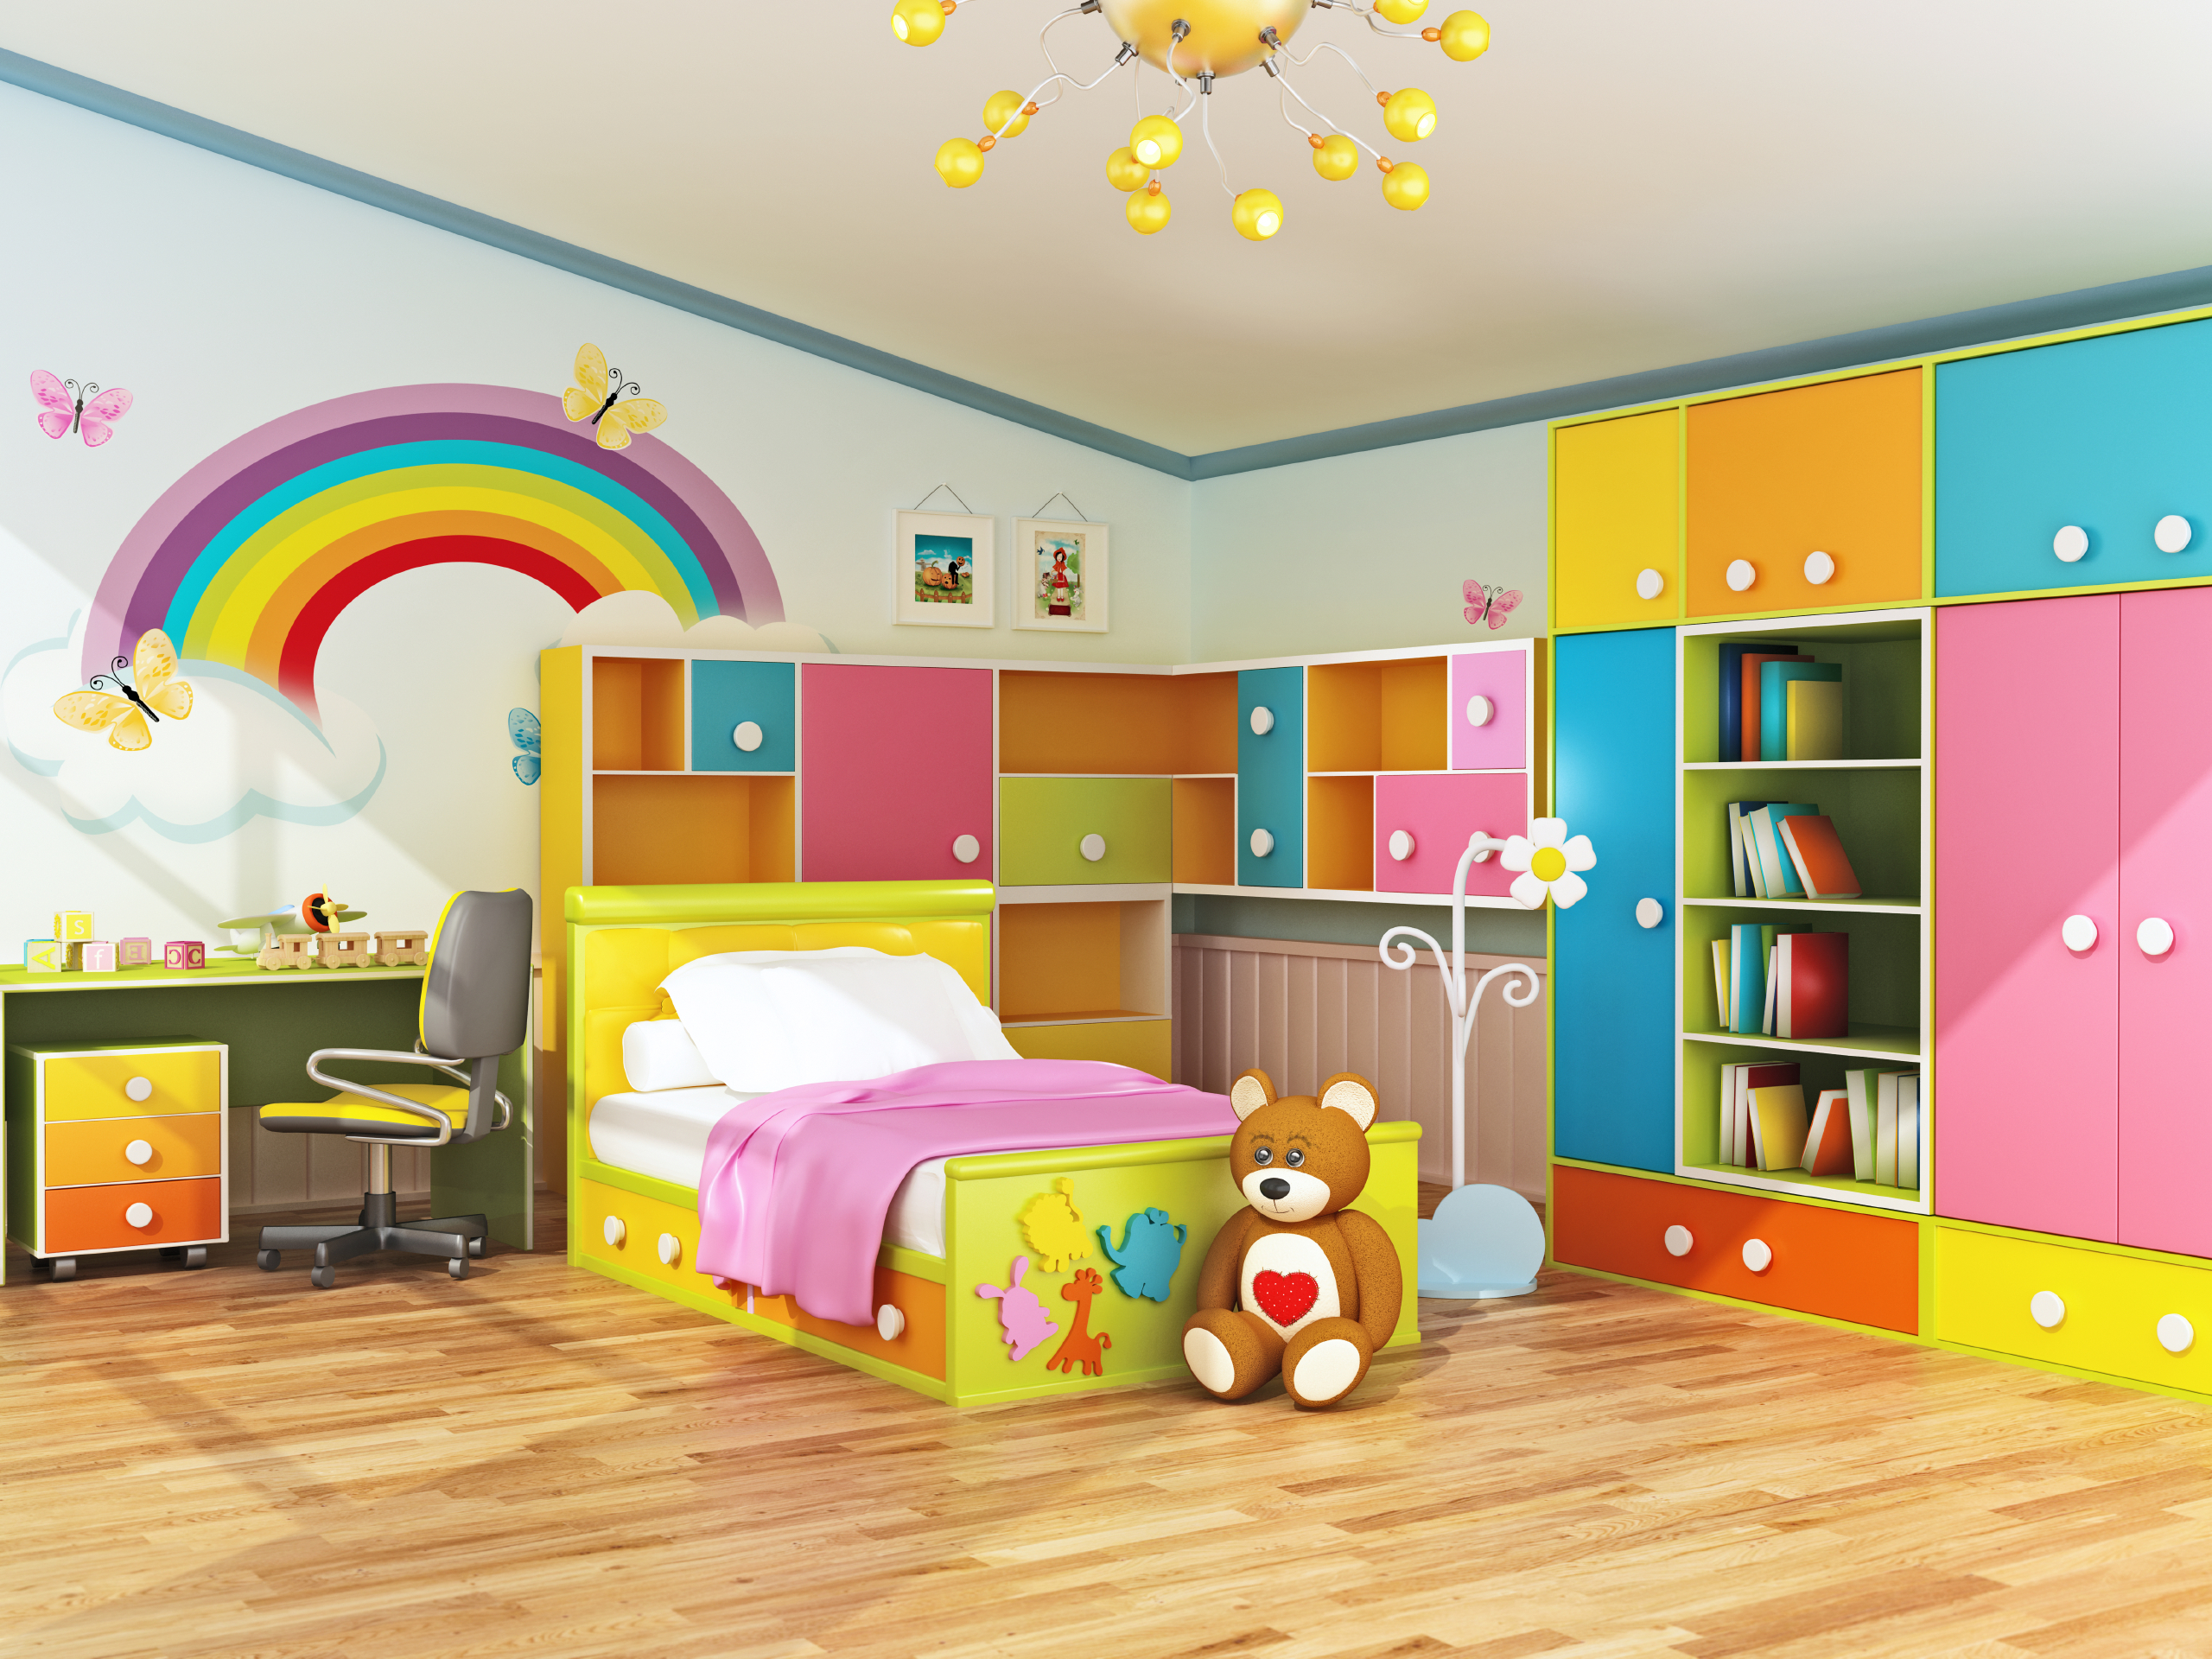 Plan ahead when decorating kids 39 bedrooms rismedia 39 s Youth bedroom design ideas